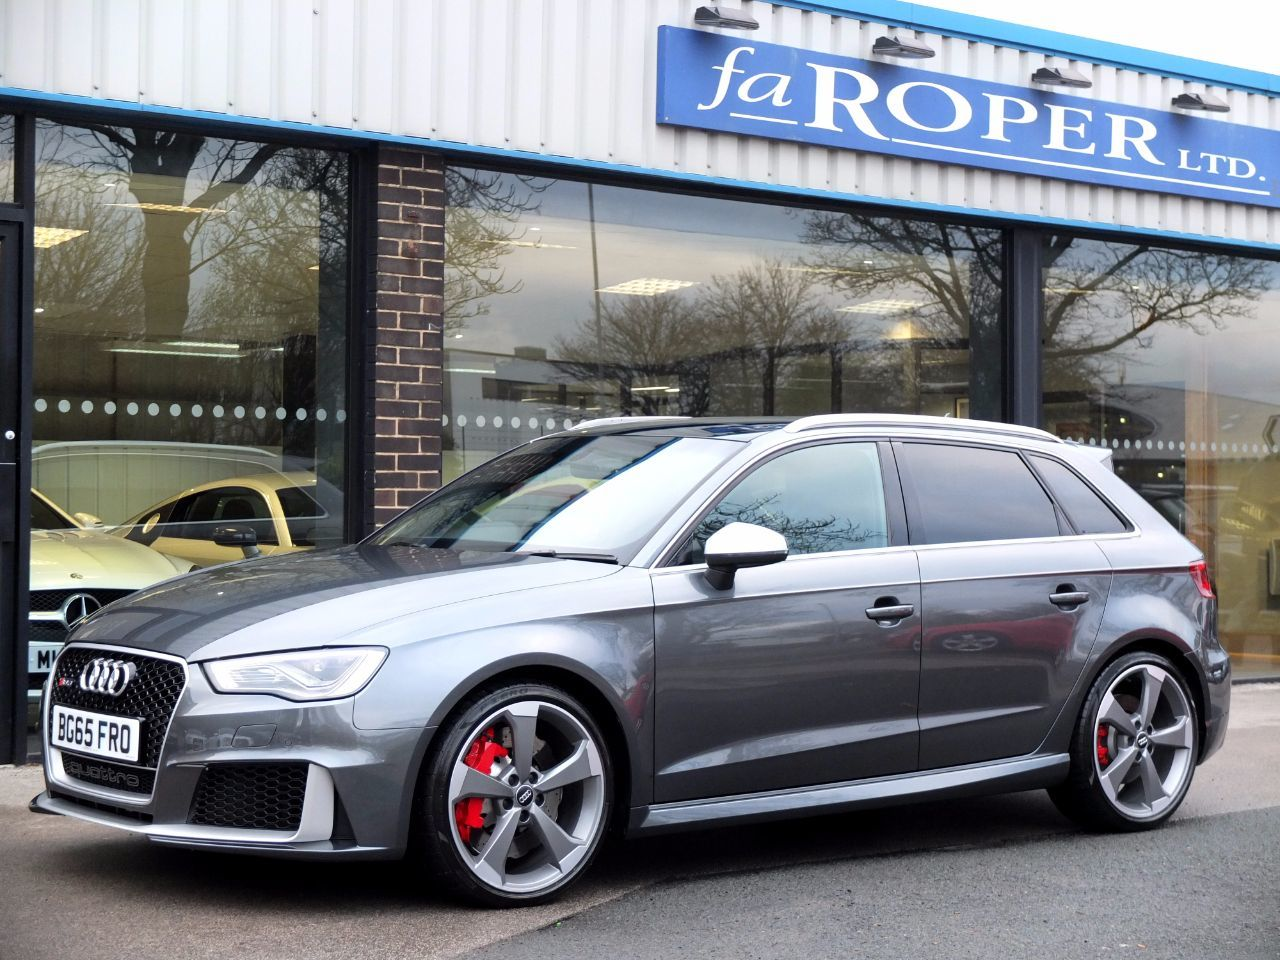 used audi rs3 2 5 tfsi rs 3 quattro s tronic for sale in bradford west yorkshire fa roper ltd. Black Bedroom Furniture Sets. Home Design Ideas